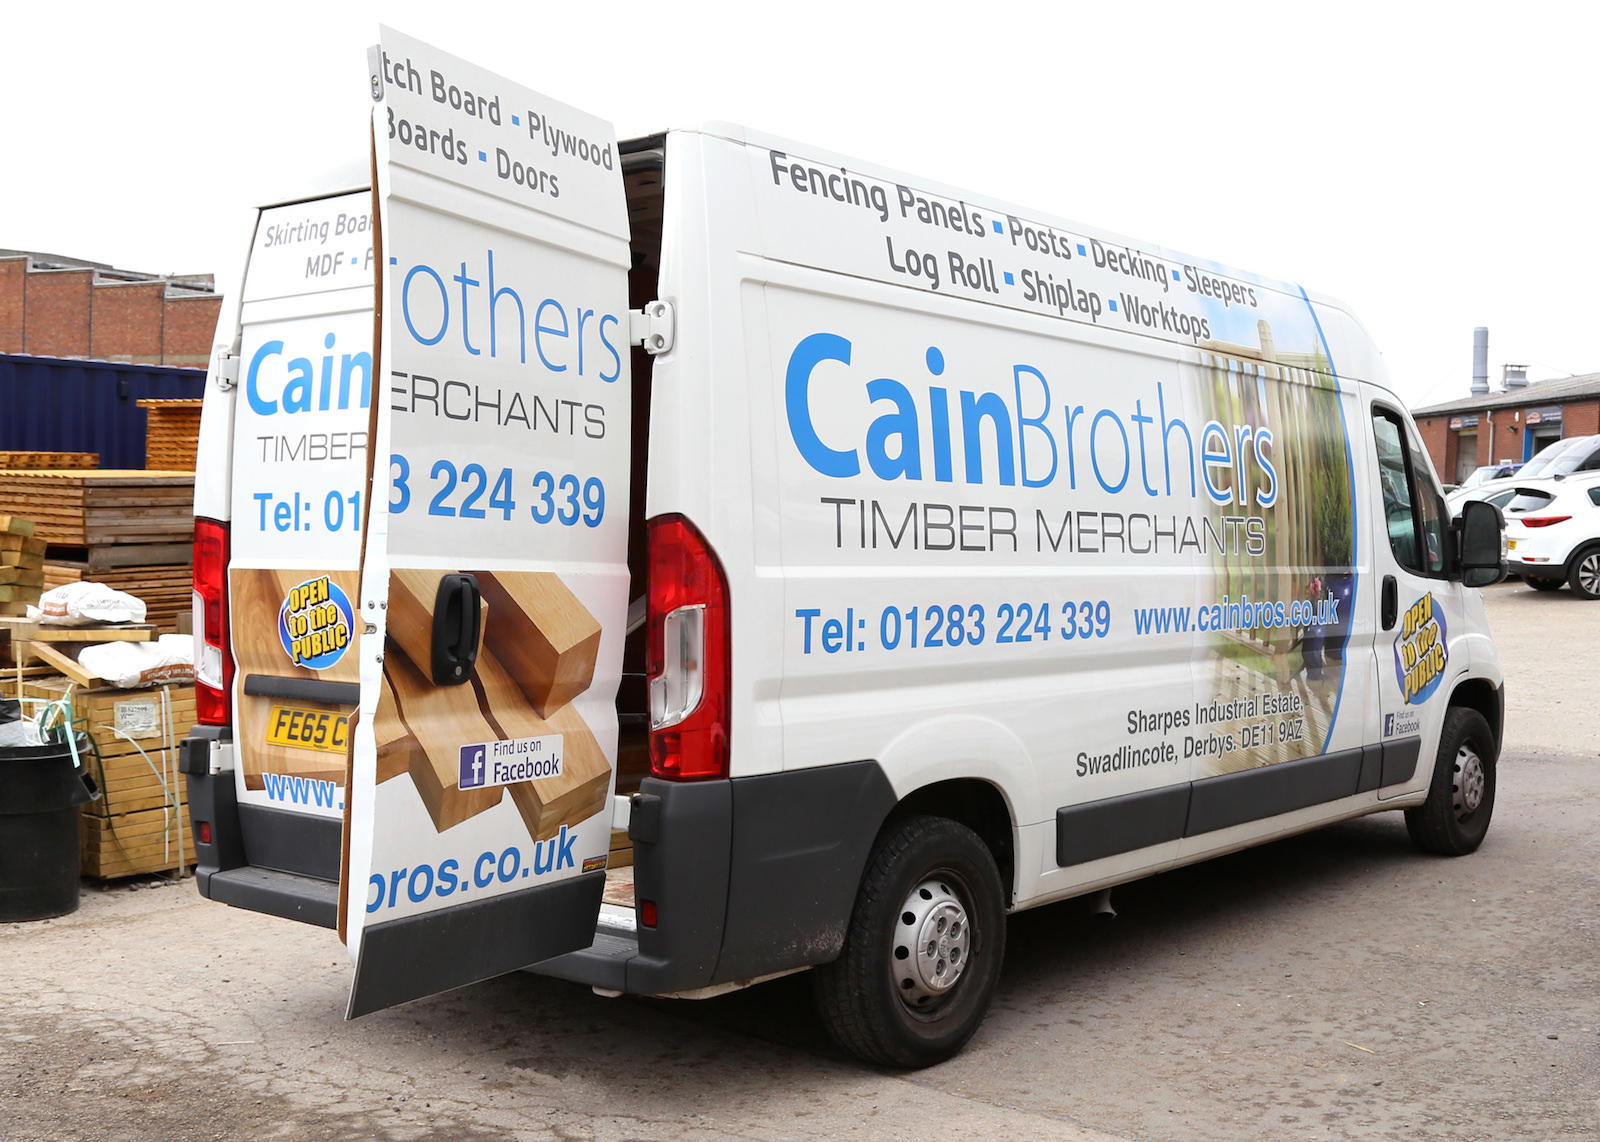 Cain Brothers Timber Merchants Delivery Van